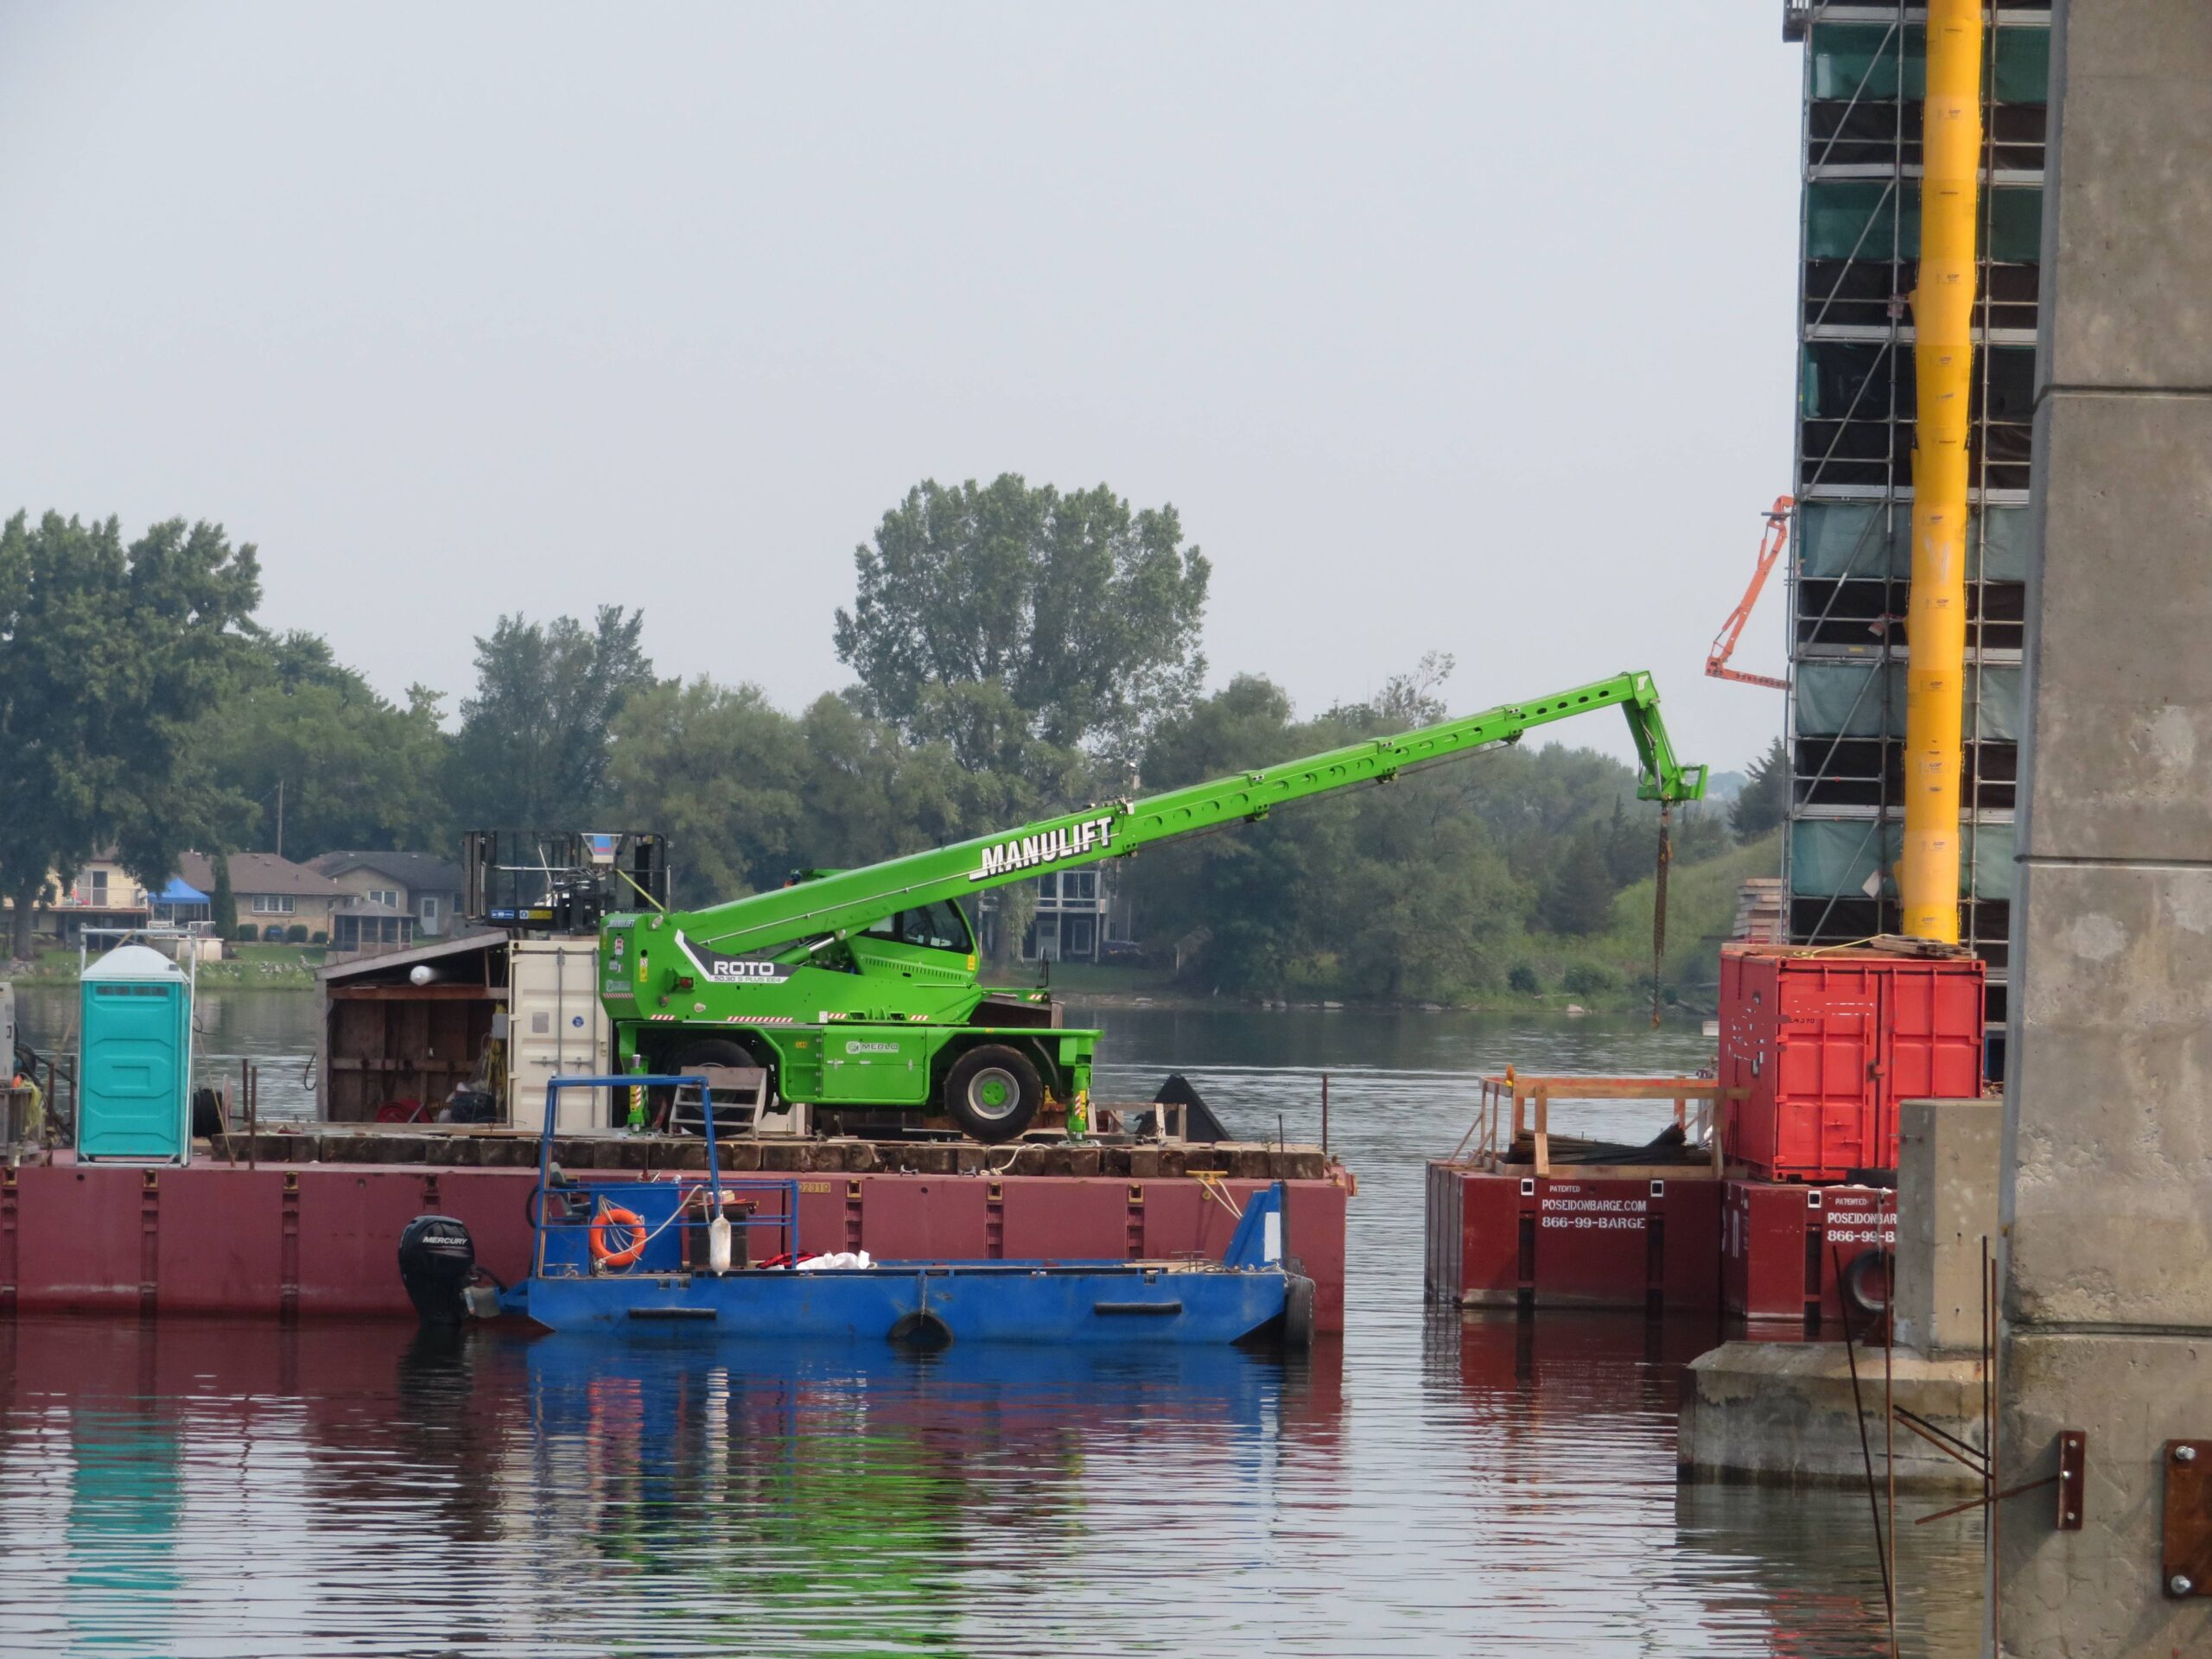 Using the manlift to move materials onto the pier 10 barge